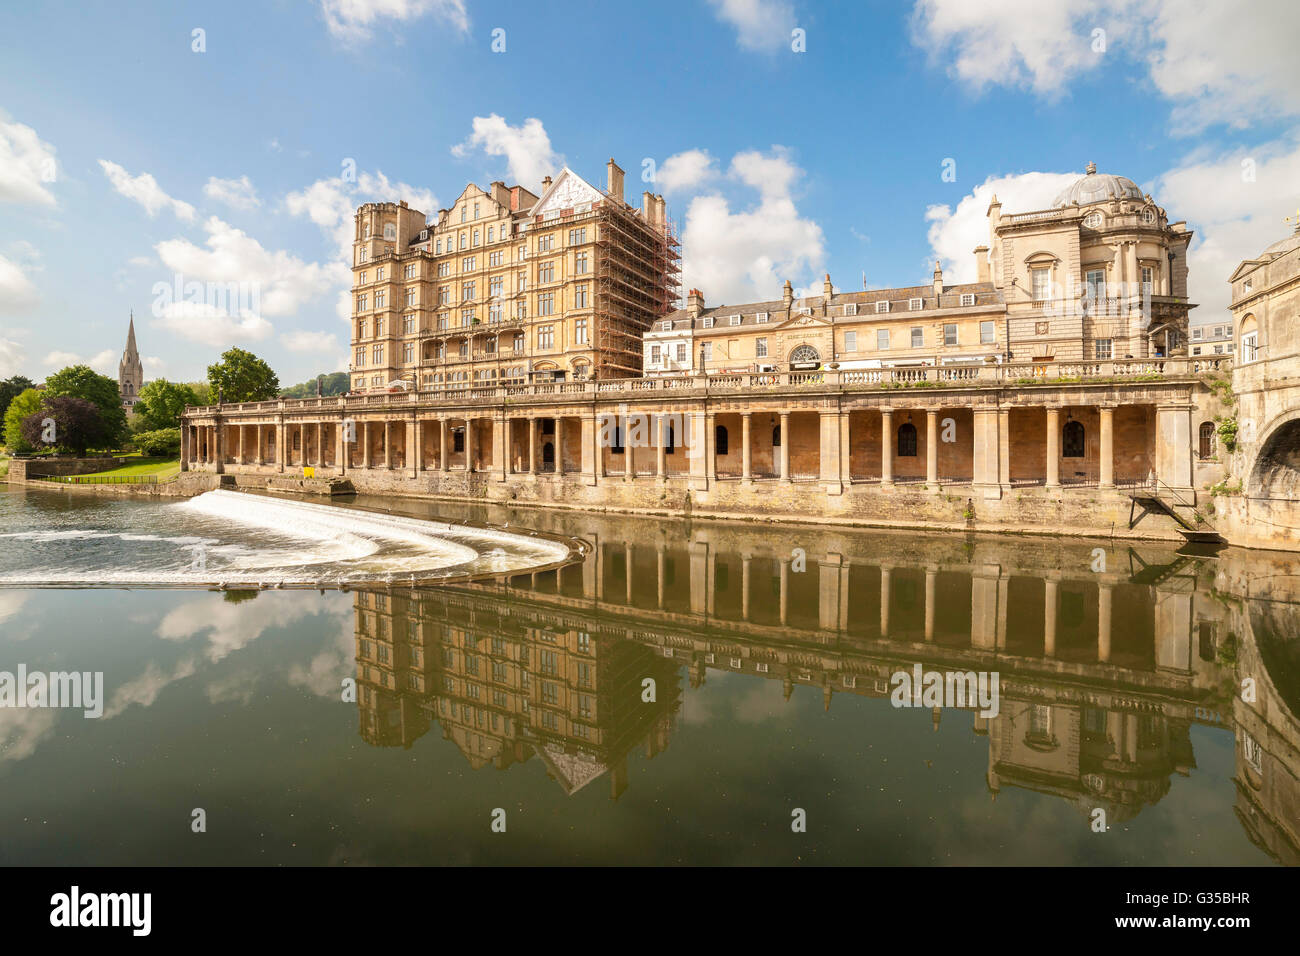 The Historic town of Bath, Somerset. - Stock Image